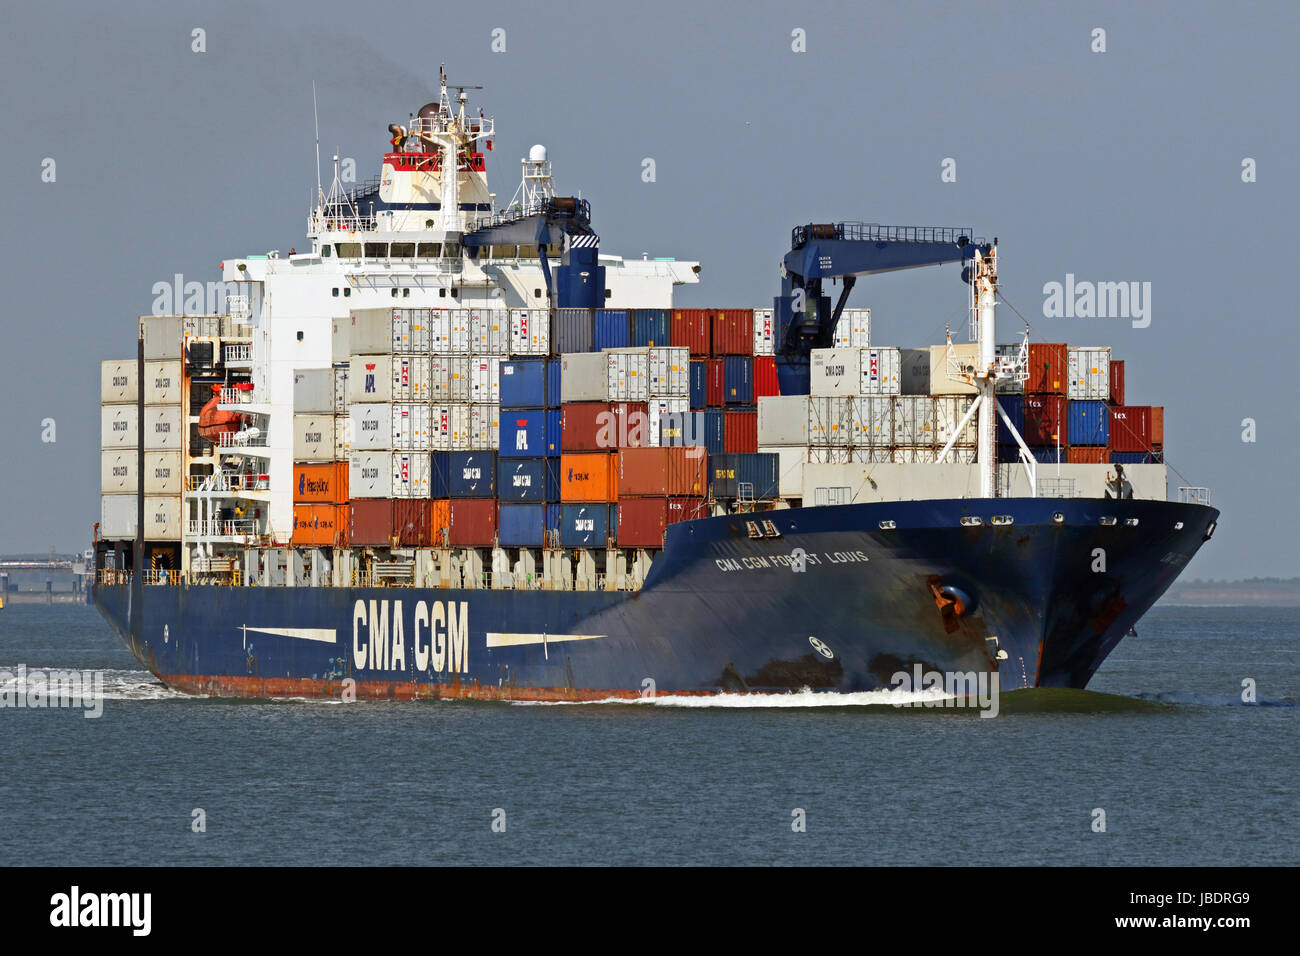 The container ship CMA CGM Fort Louis passes Terneuzen and continues to the port of Antwerp. - Stock Image